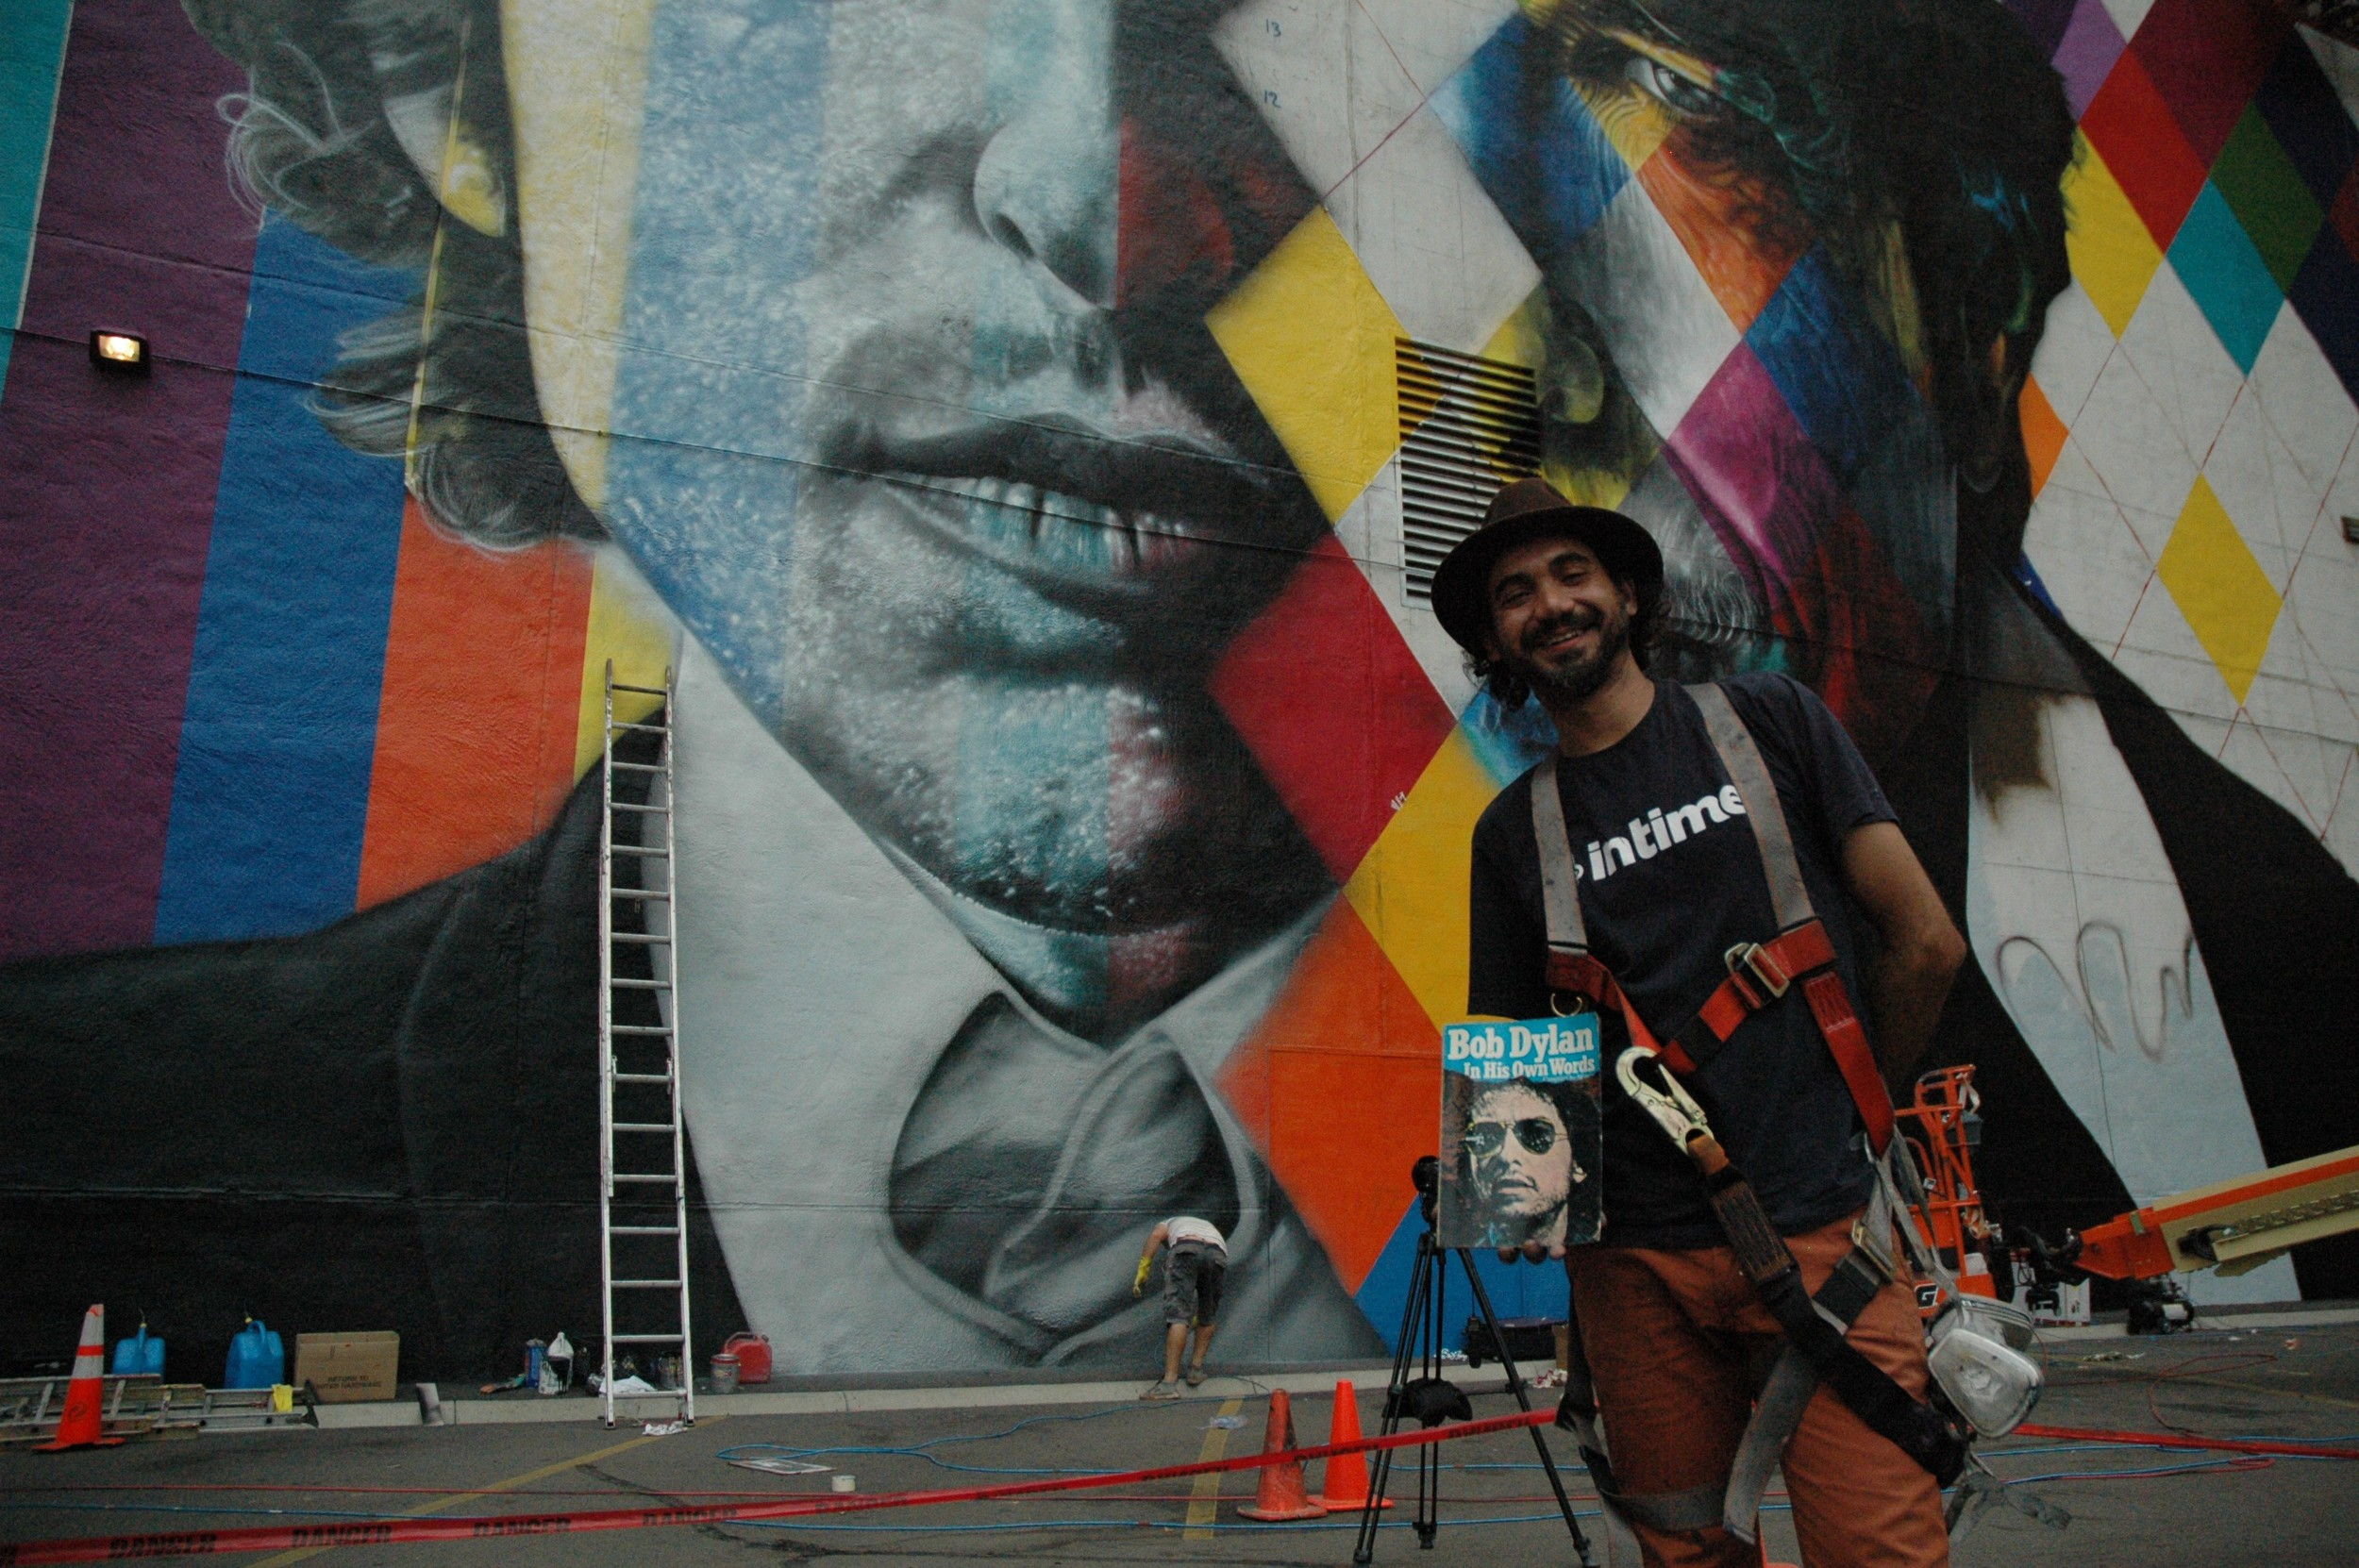 Eduardo Kobra and a copy of Dylan's autobiography, which serendipitously was found in the building that he's painting.